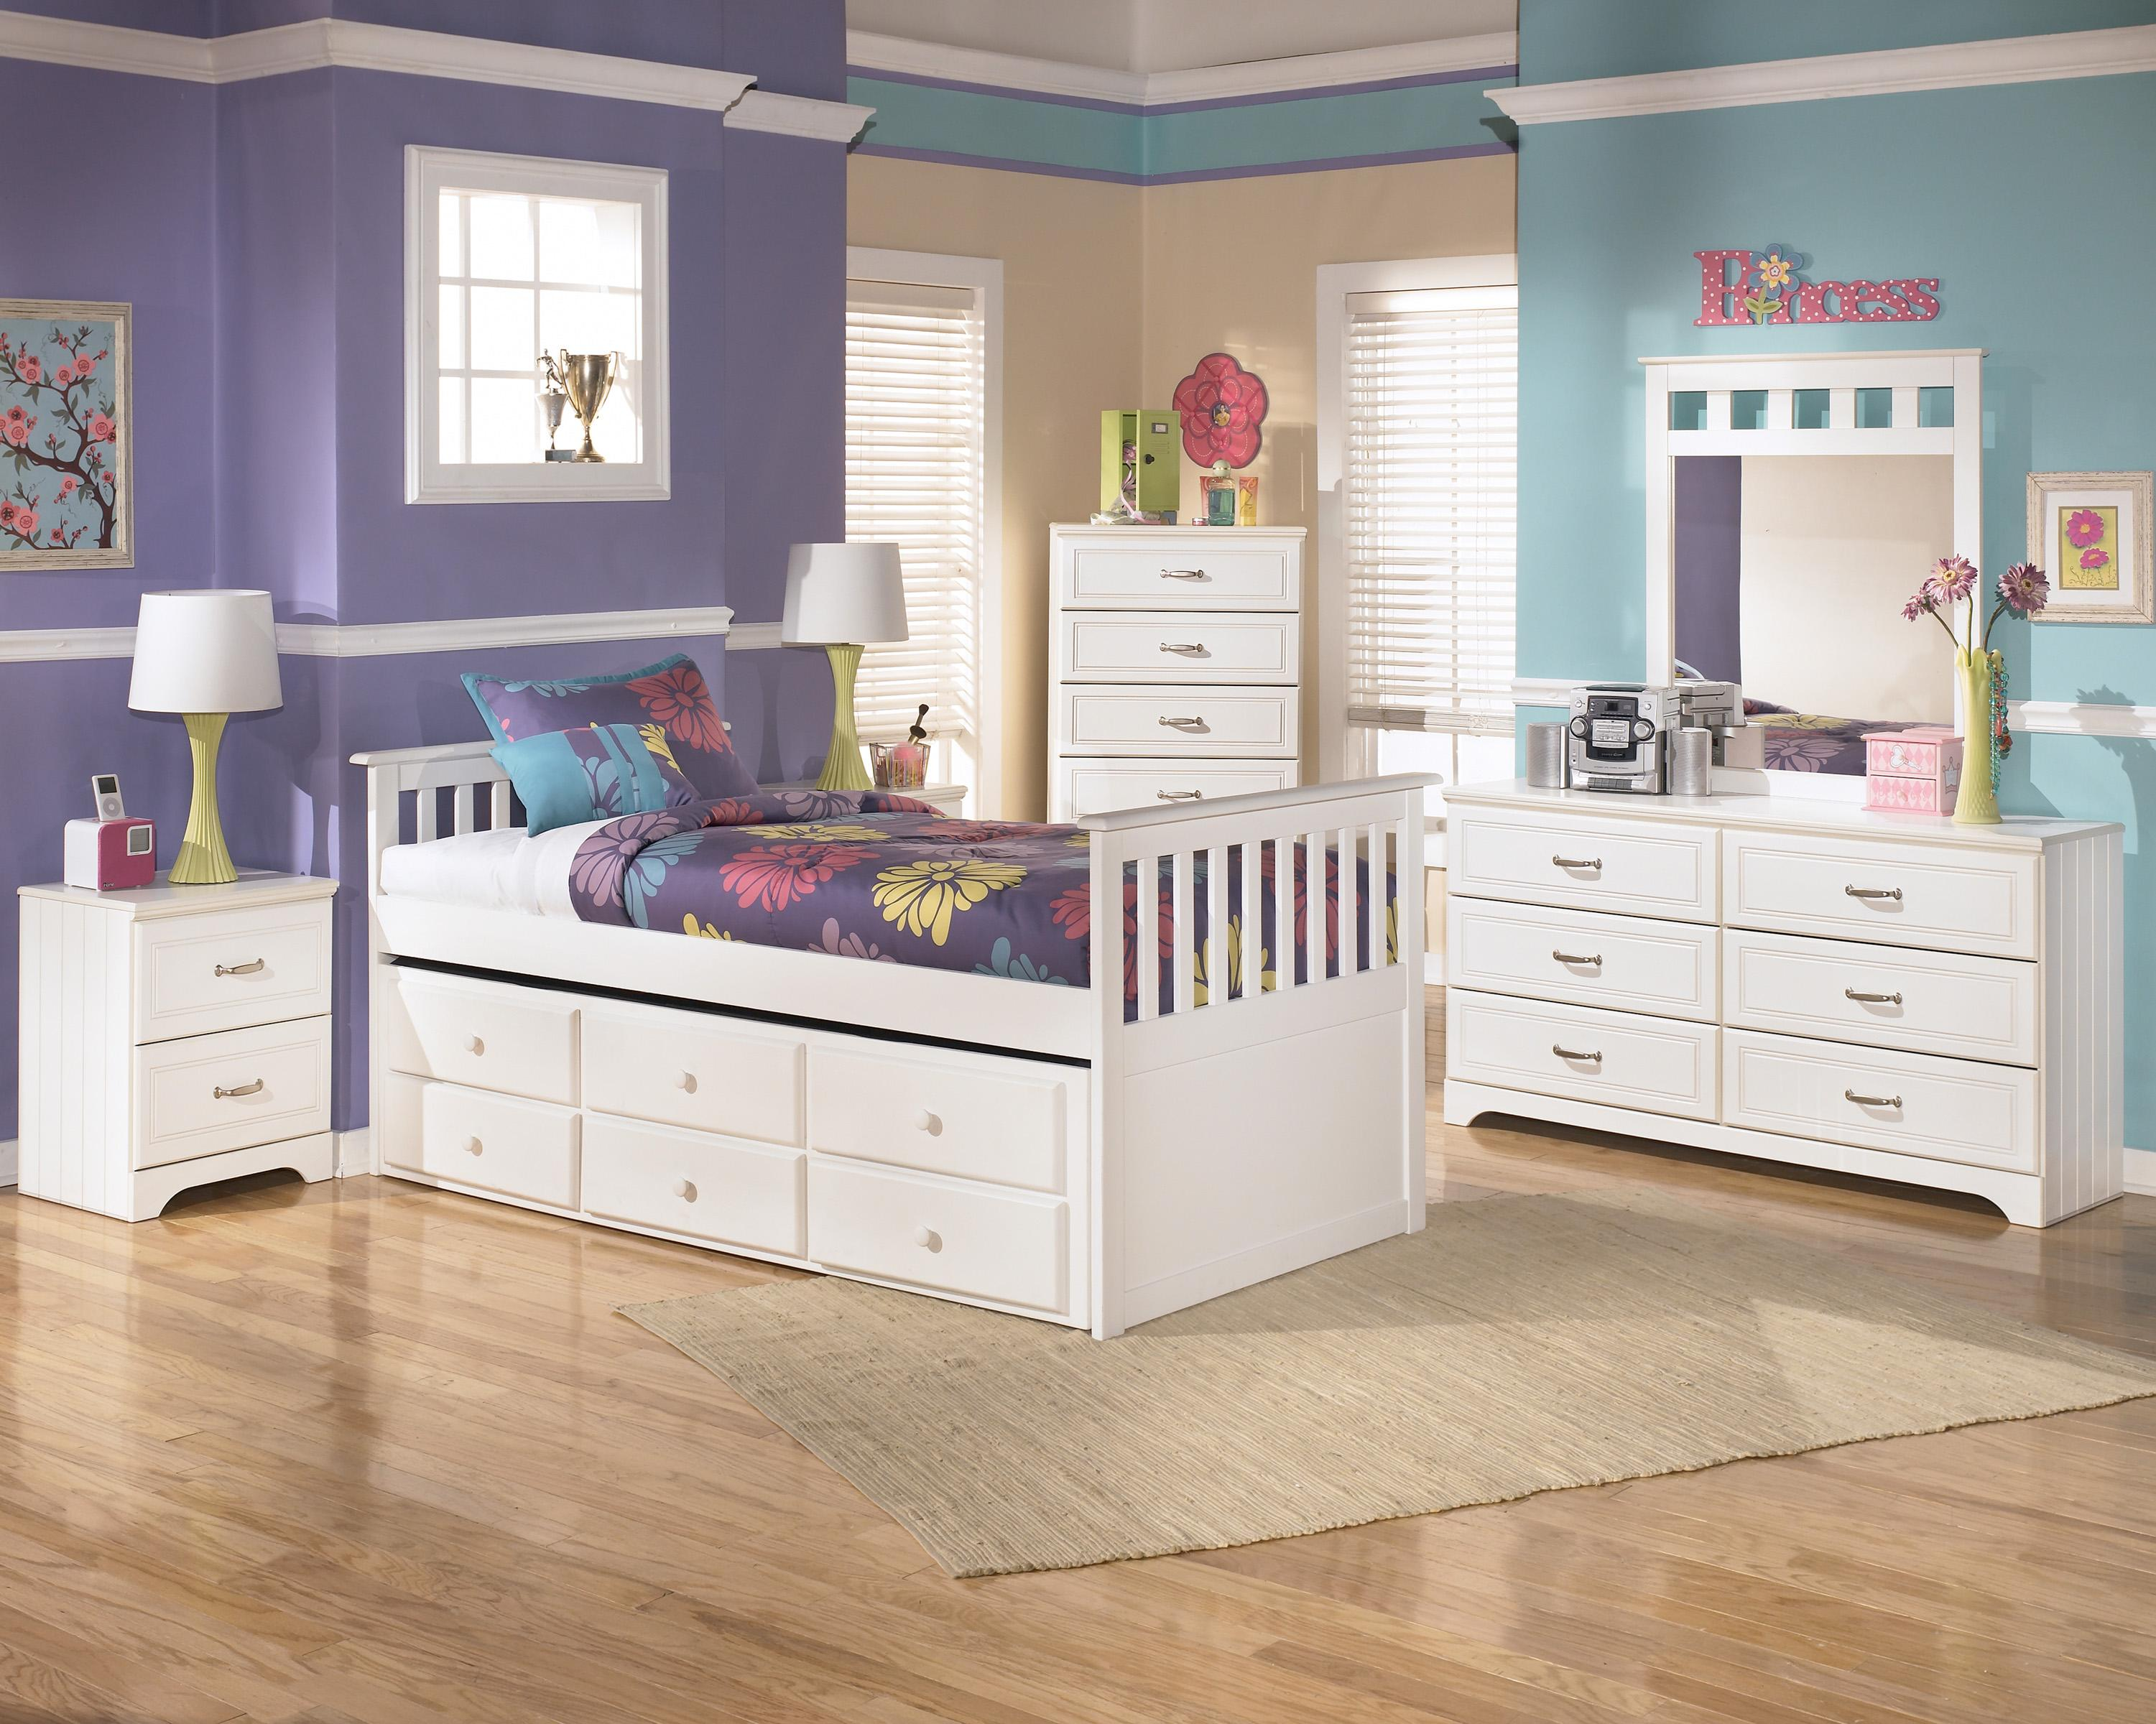 Twin Bed with Trundle Drawer Box by Signature Design by Ashley : Wolf and Gardiner Wolf Furniture